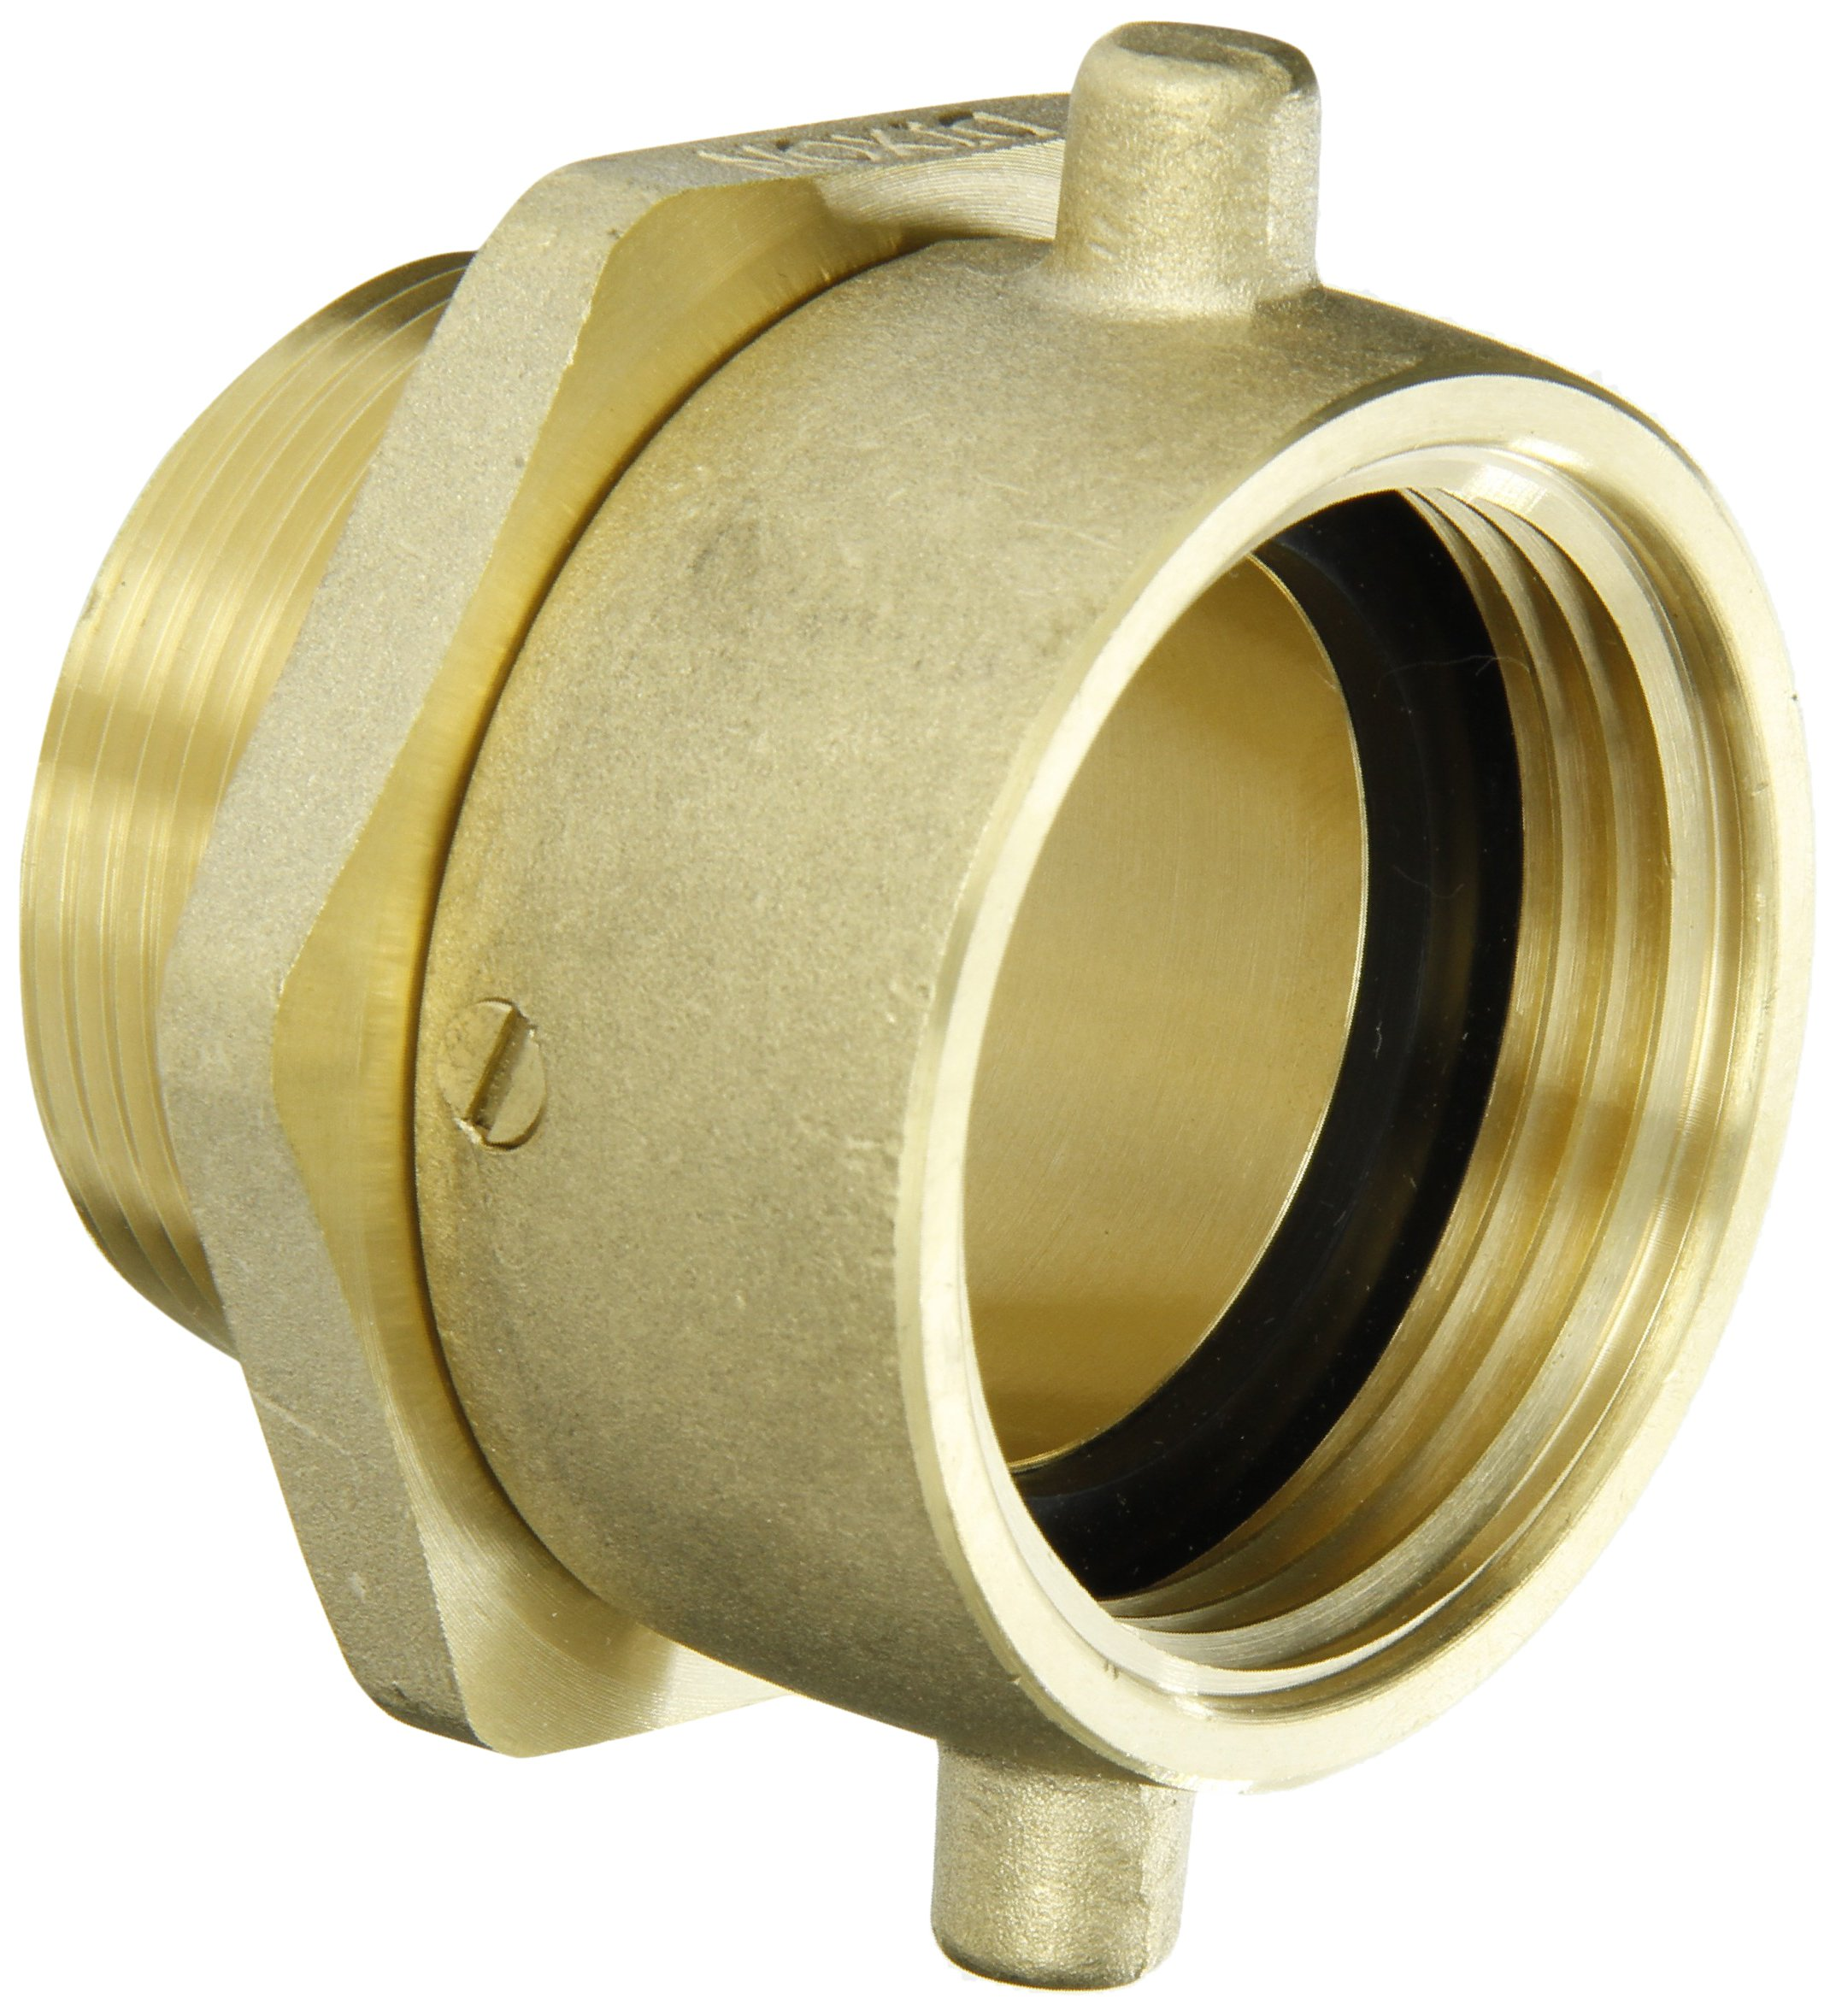 Dixon Valve & Coupling Valve SM150F Brass Fire Equipment, Swivel Adapter with Pin Lug, 1-1/2'' NST (NH) Female x 1-1/2'' NPT Male